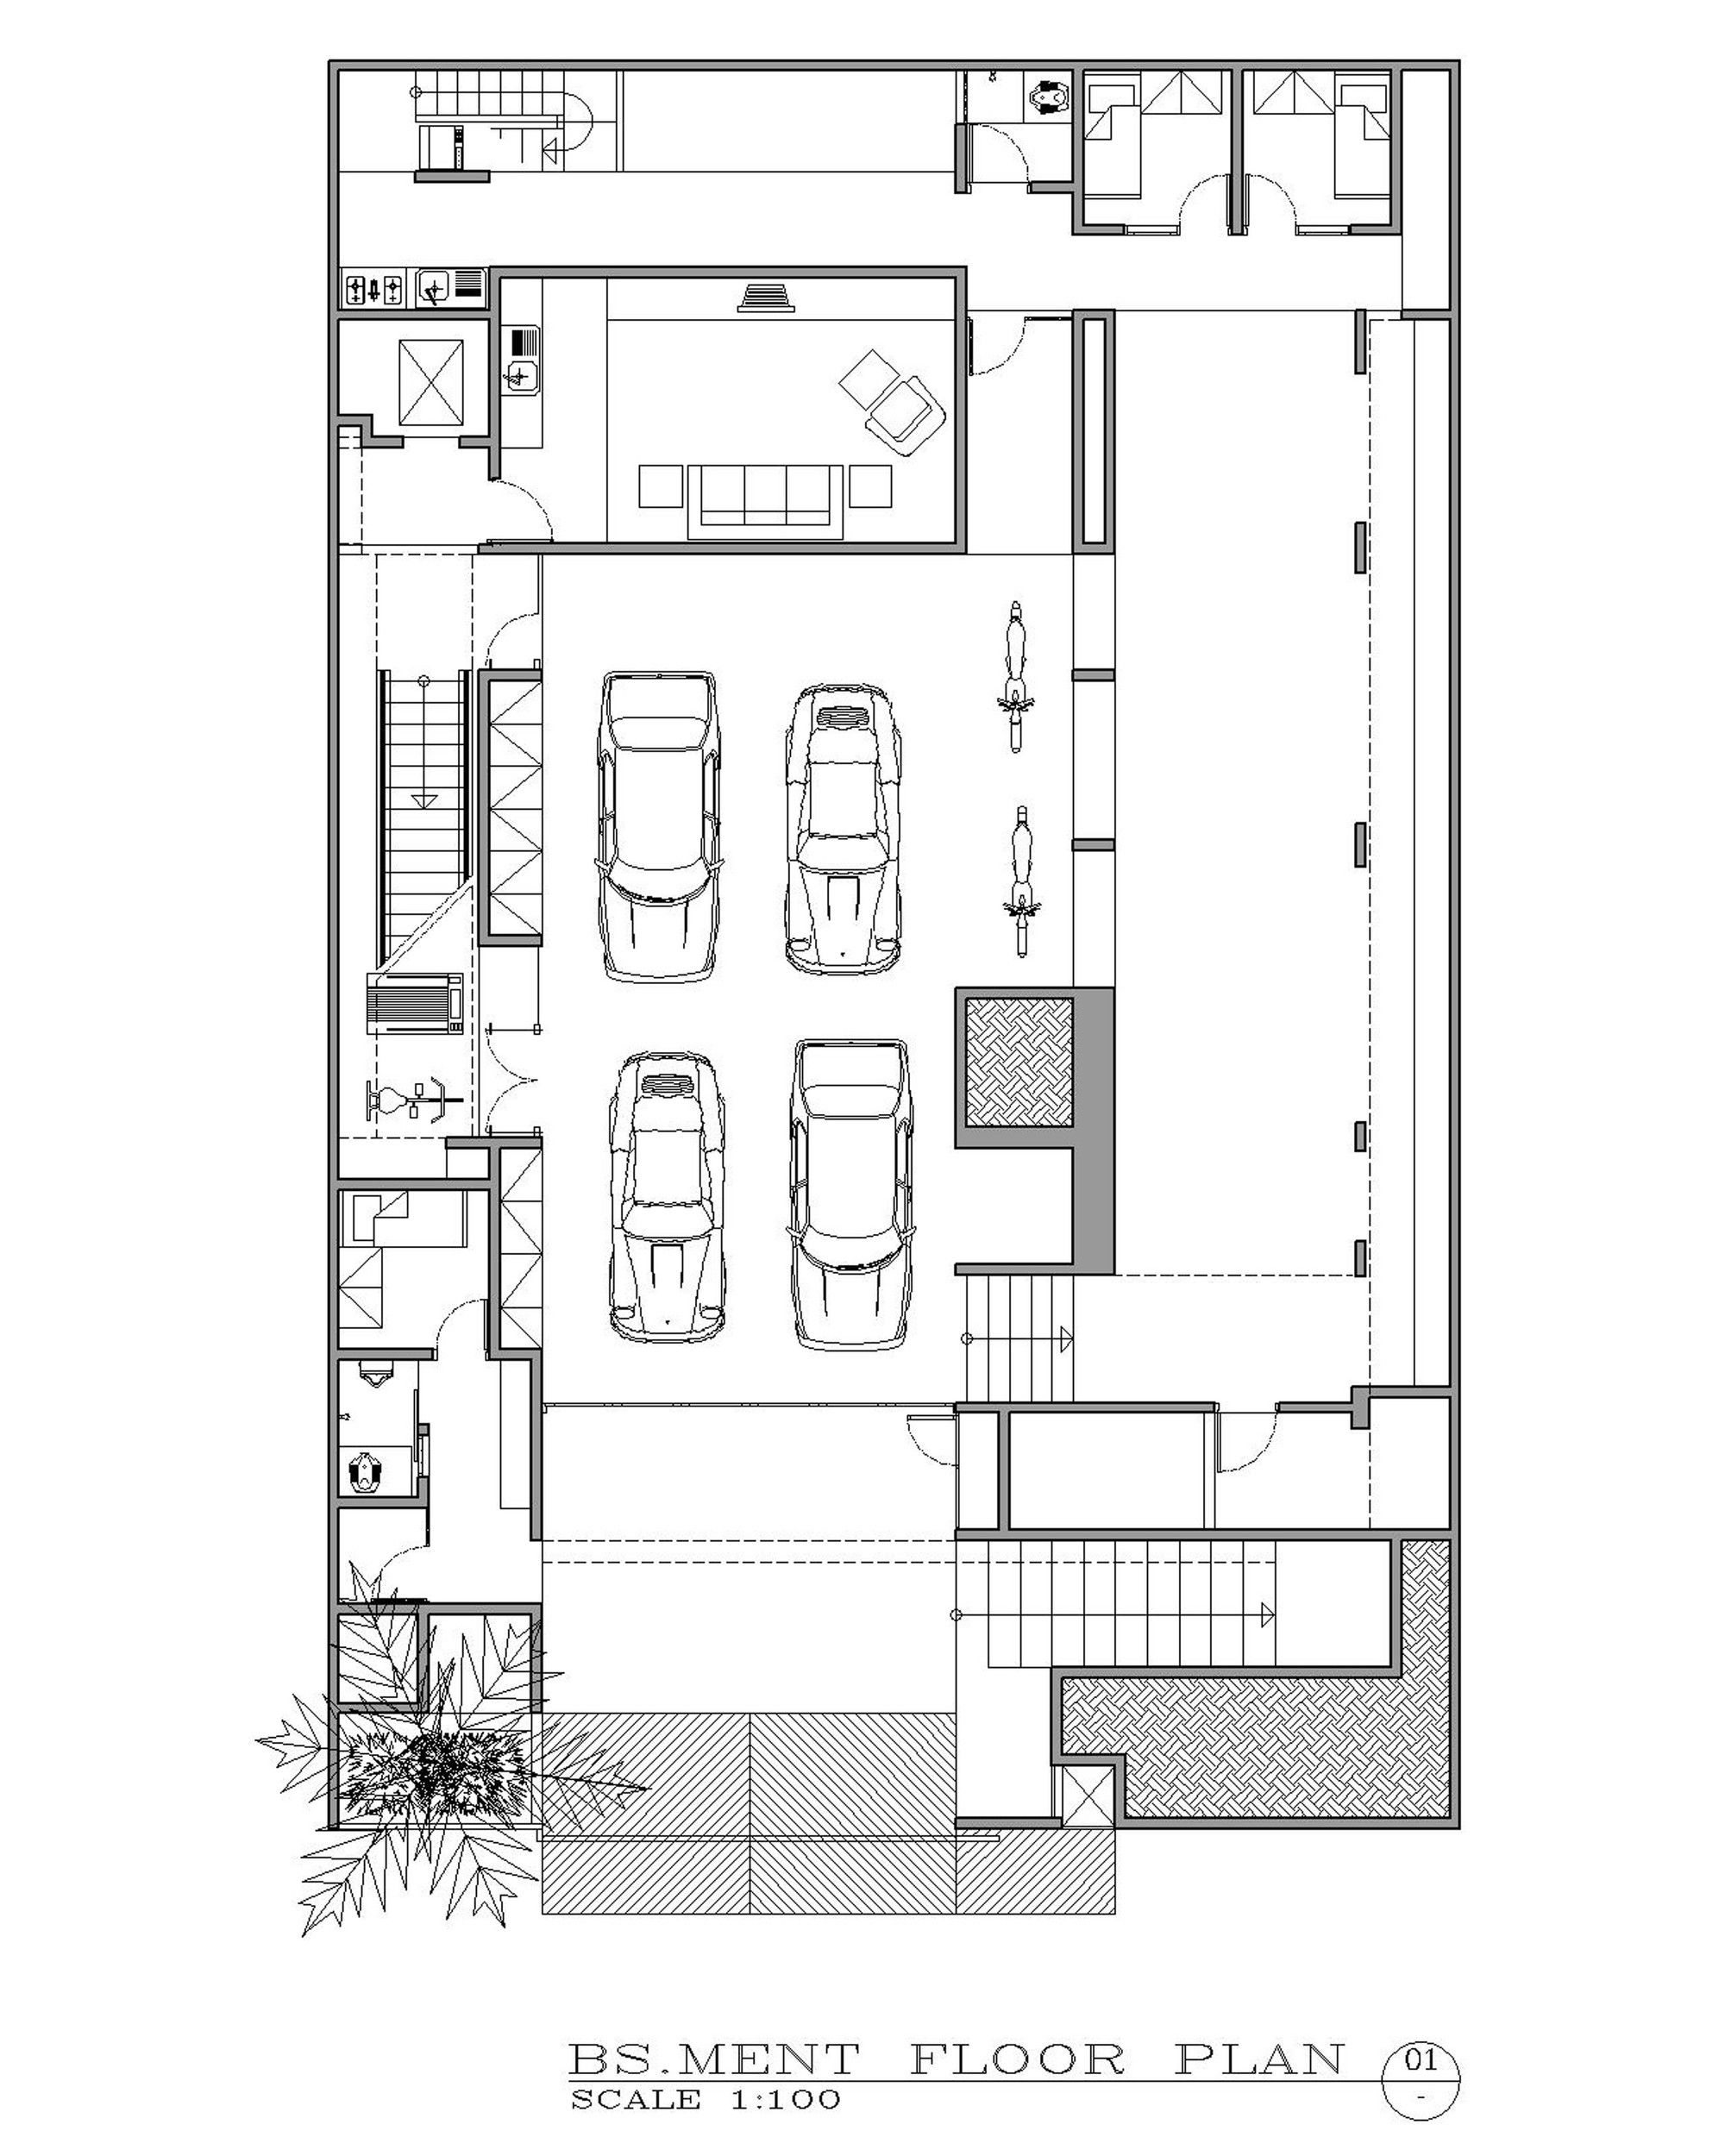 small resolution of image 16 of 20 from gallery of ben house gp gets architects floor plan